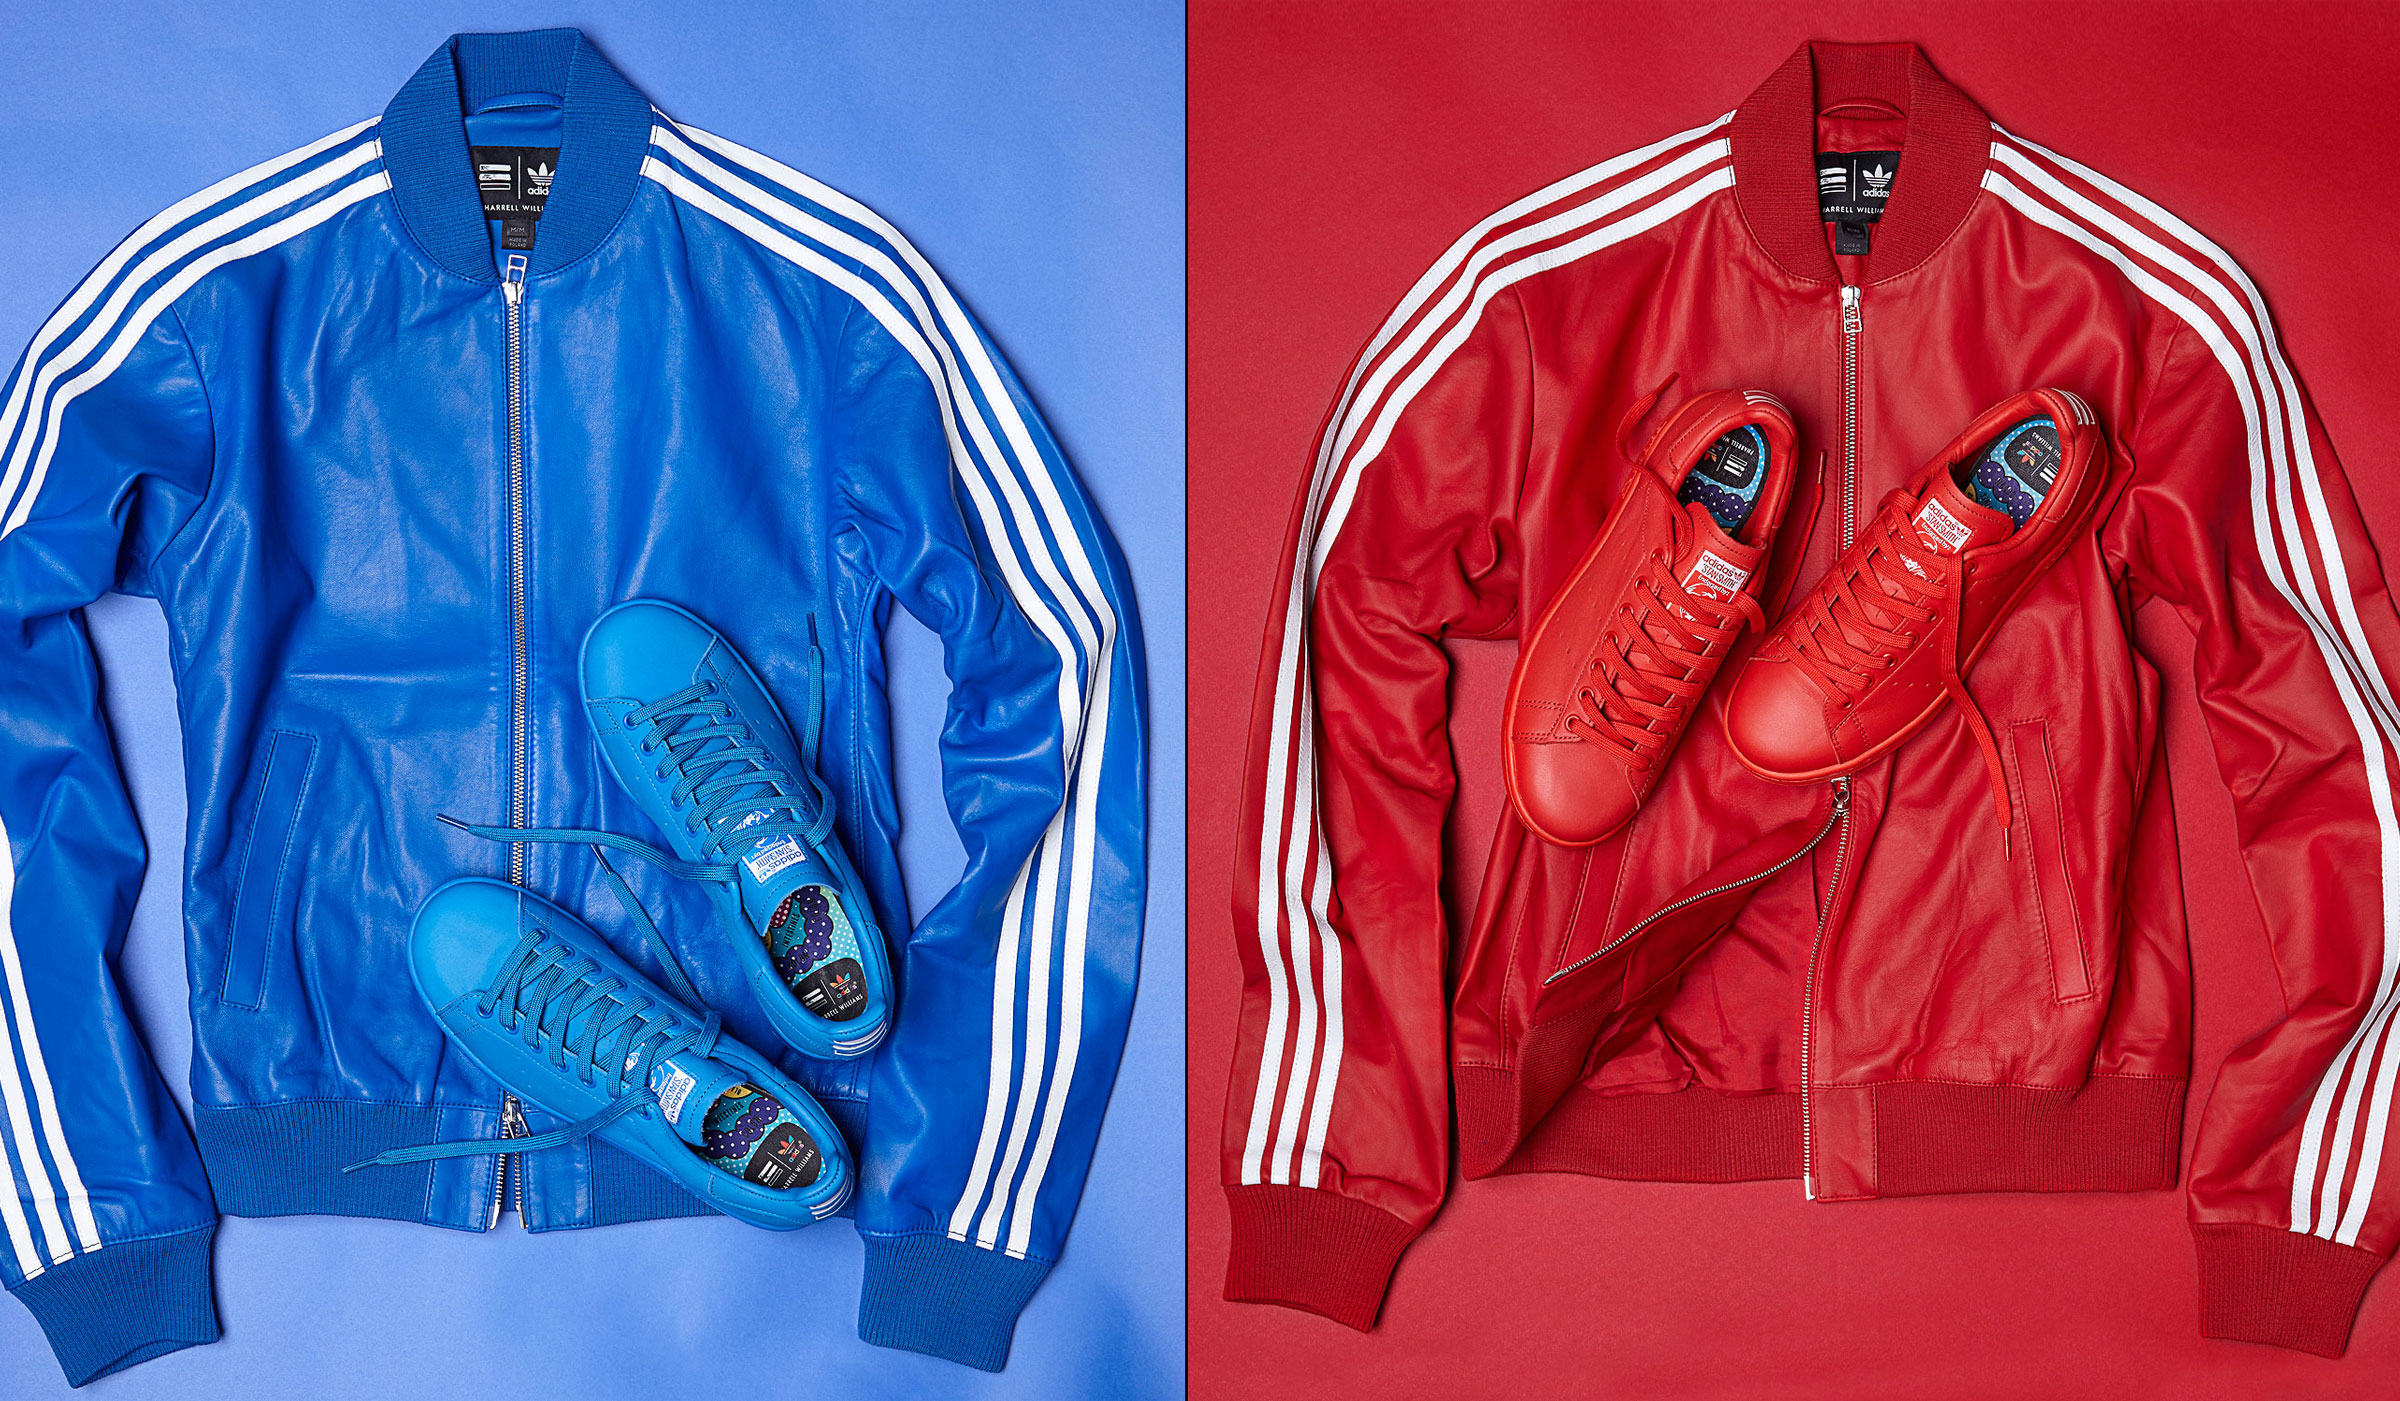 ADIDAS CONSORTIUM X PHARRELL WILLIAMS